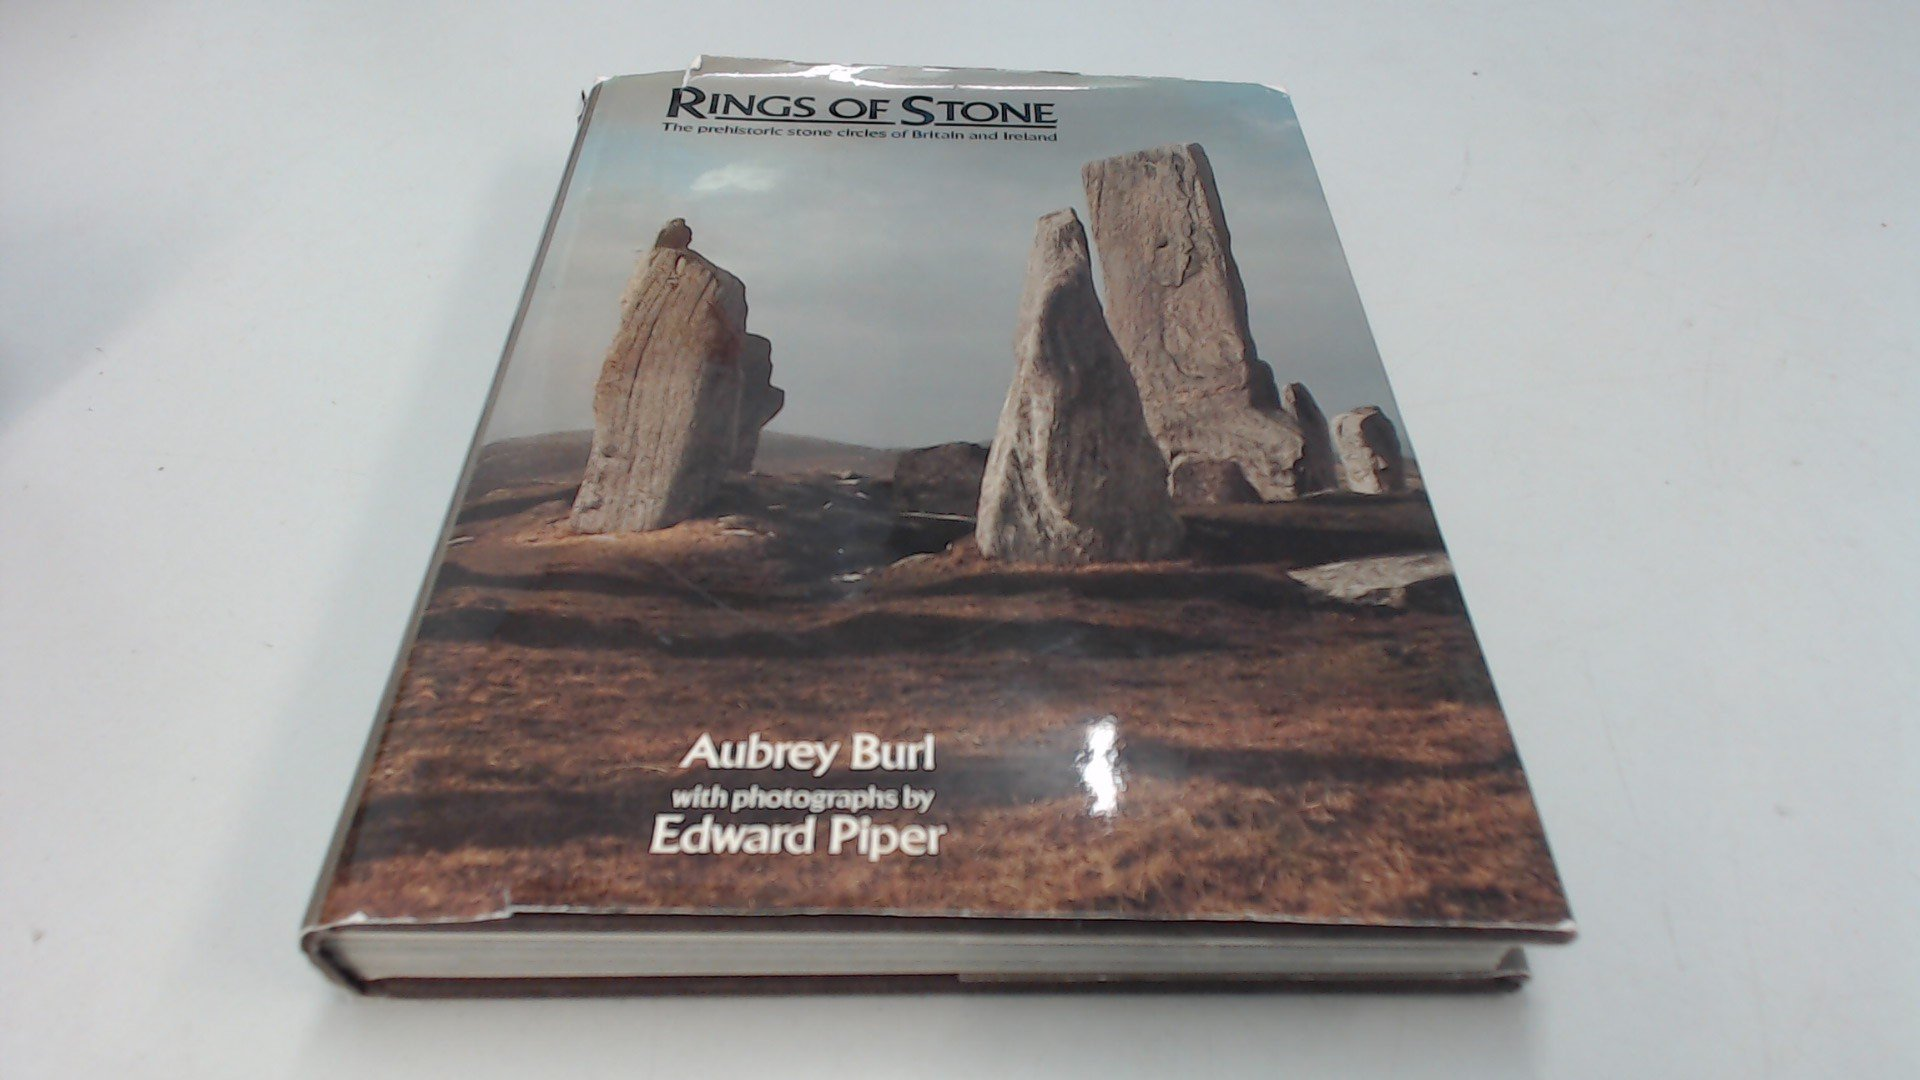 Rings of Stone: The Prehistoric Stone Circles of Britain and Ireland:  Edward Piper, Aubrey Burl: 9780899190006: Amazon.com: Books